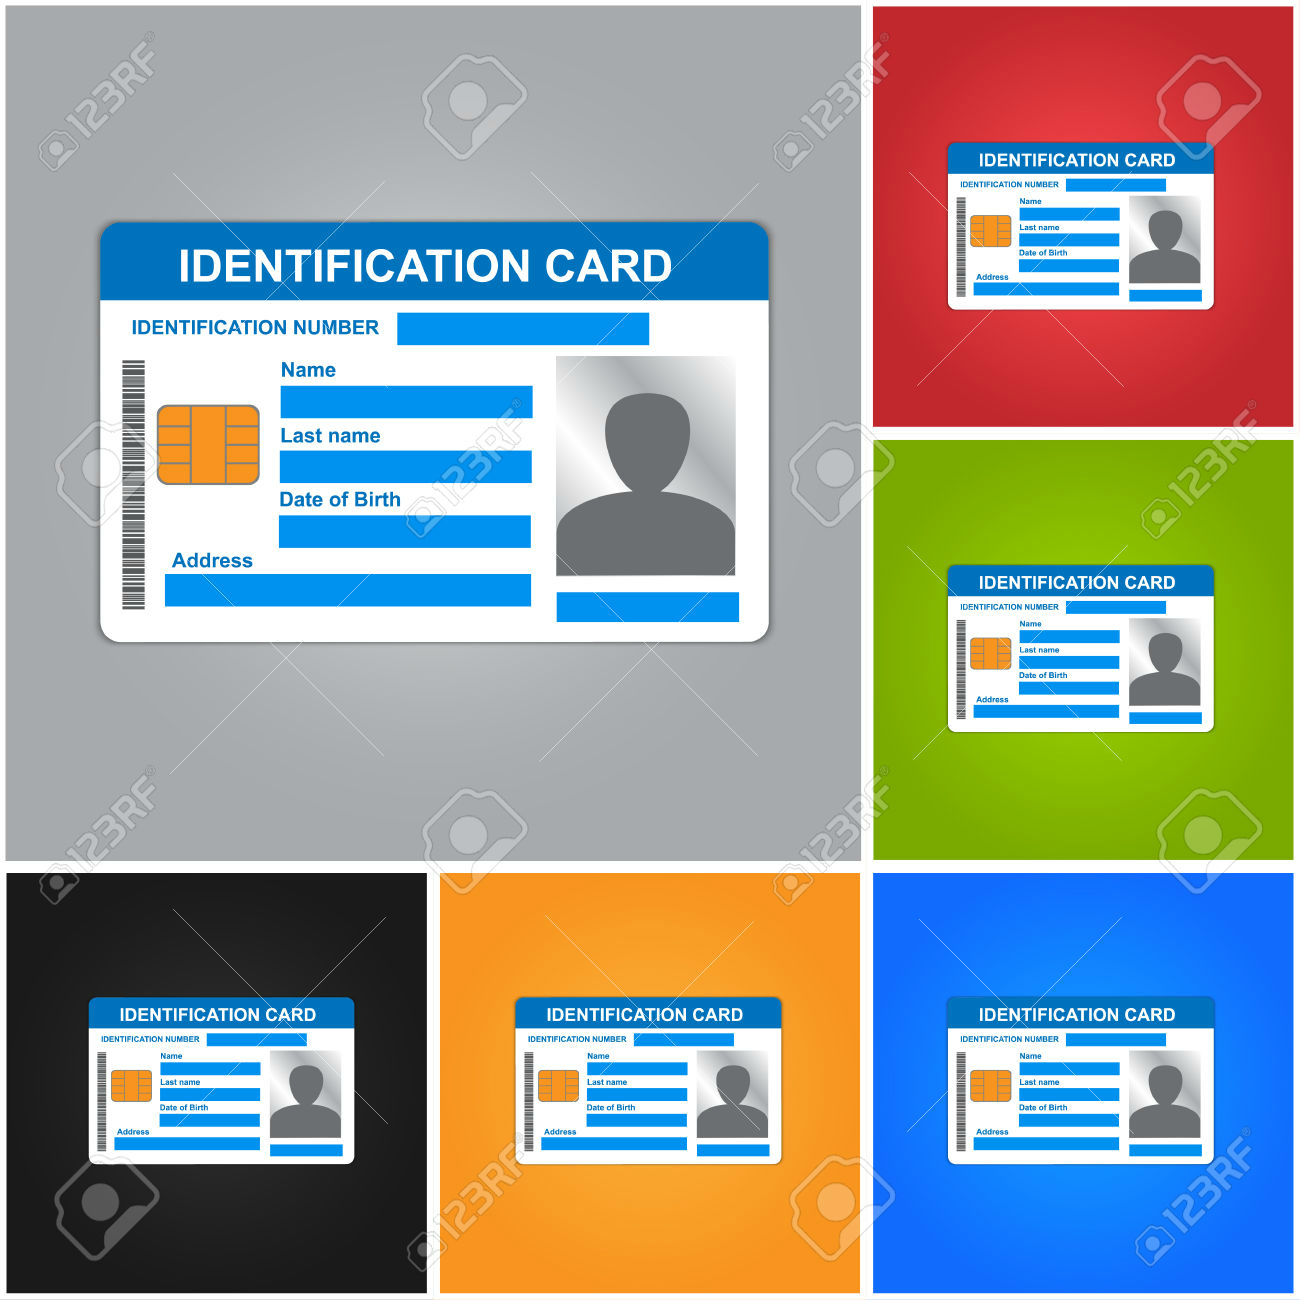 Isic card template choice image template design ideas for Isic card template